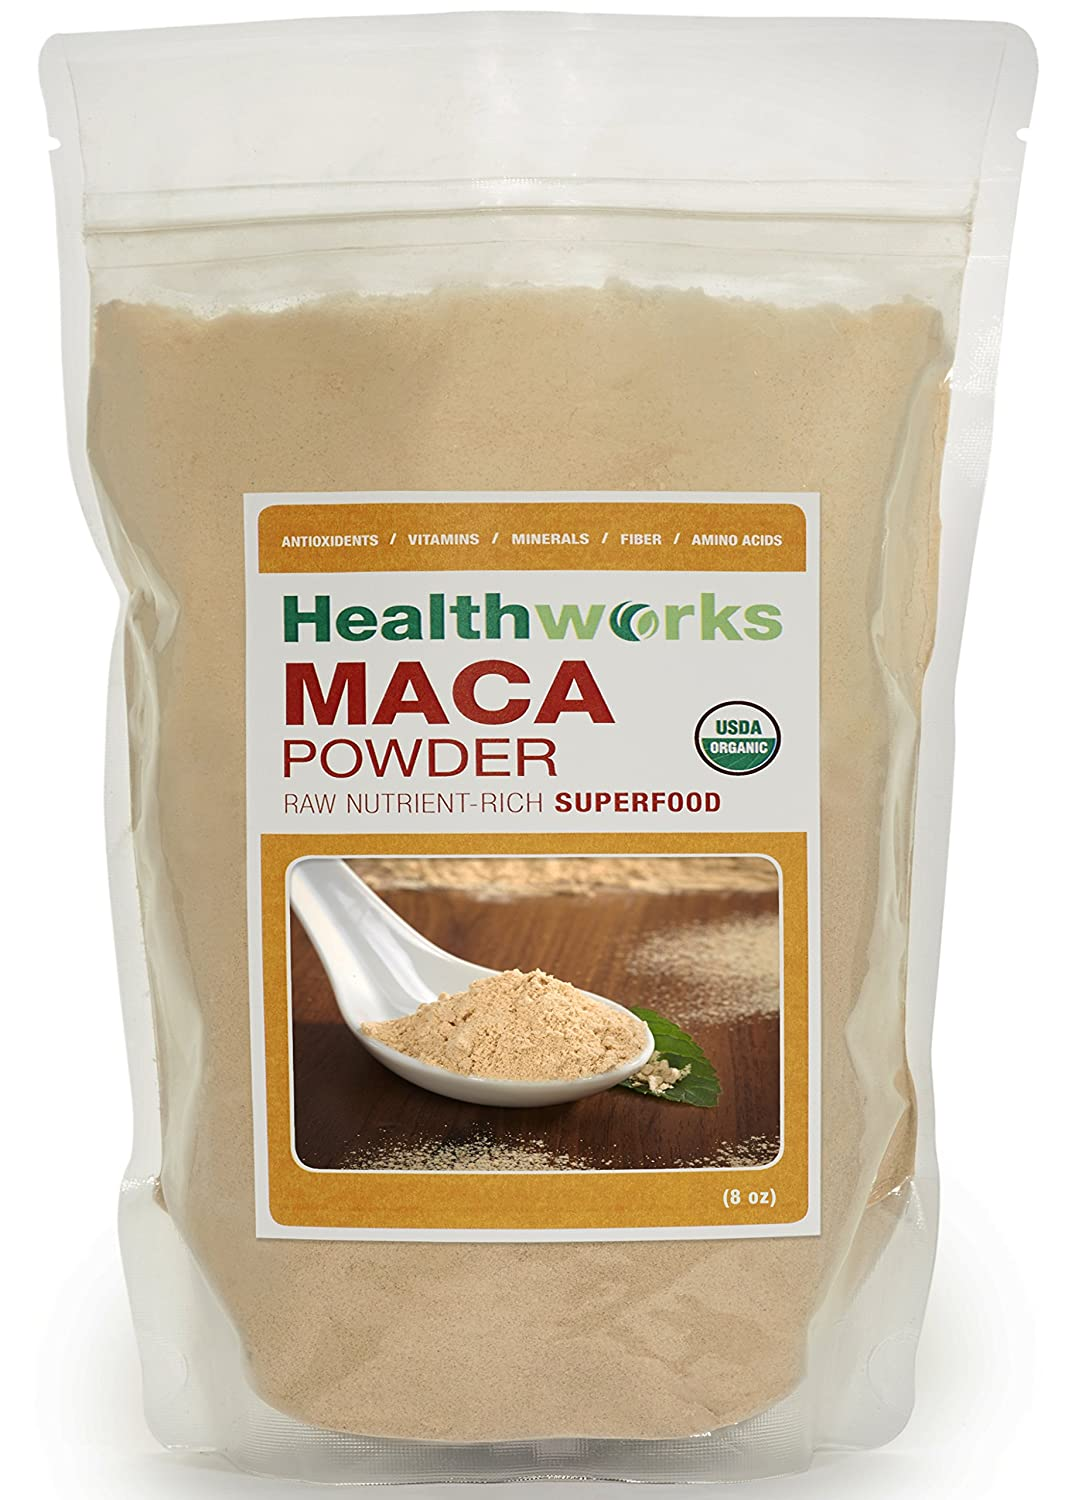 Healthworks Maca Powder Raw Organic, 4lb (2 2lb Packs): Amazon.com: Grocery & Gourmet Food